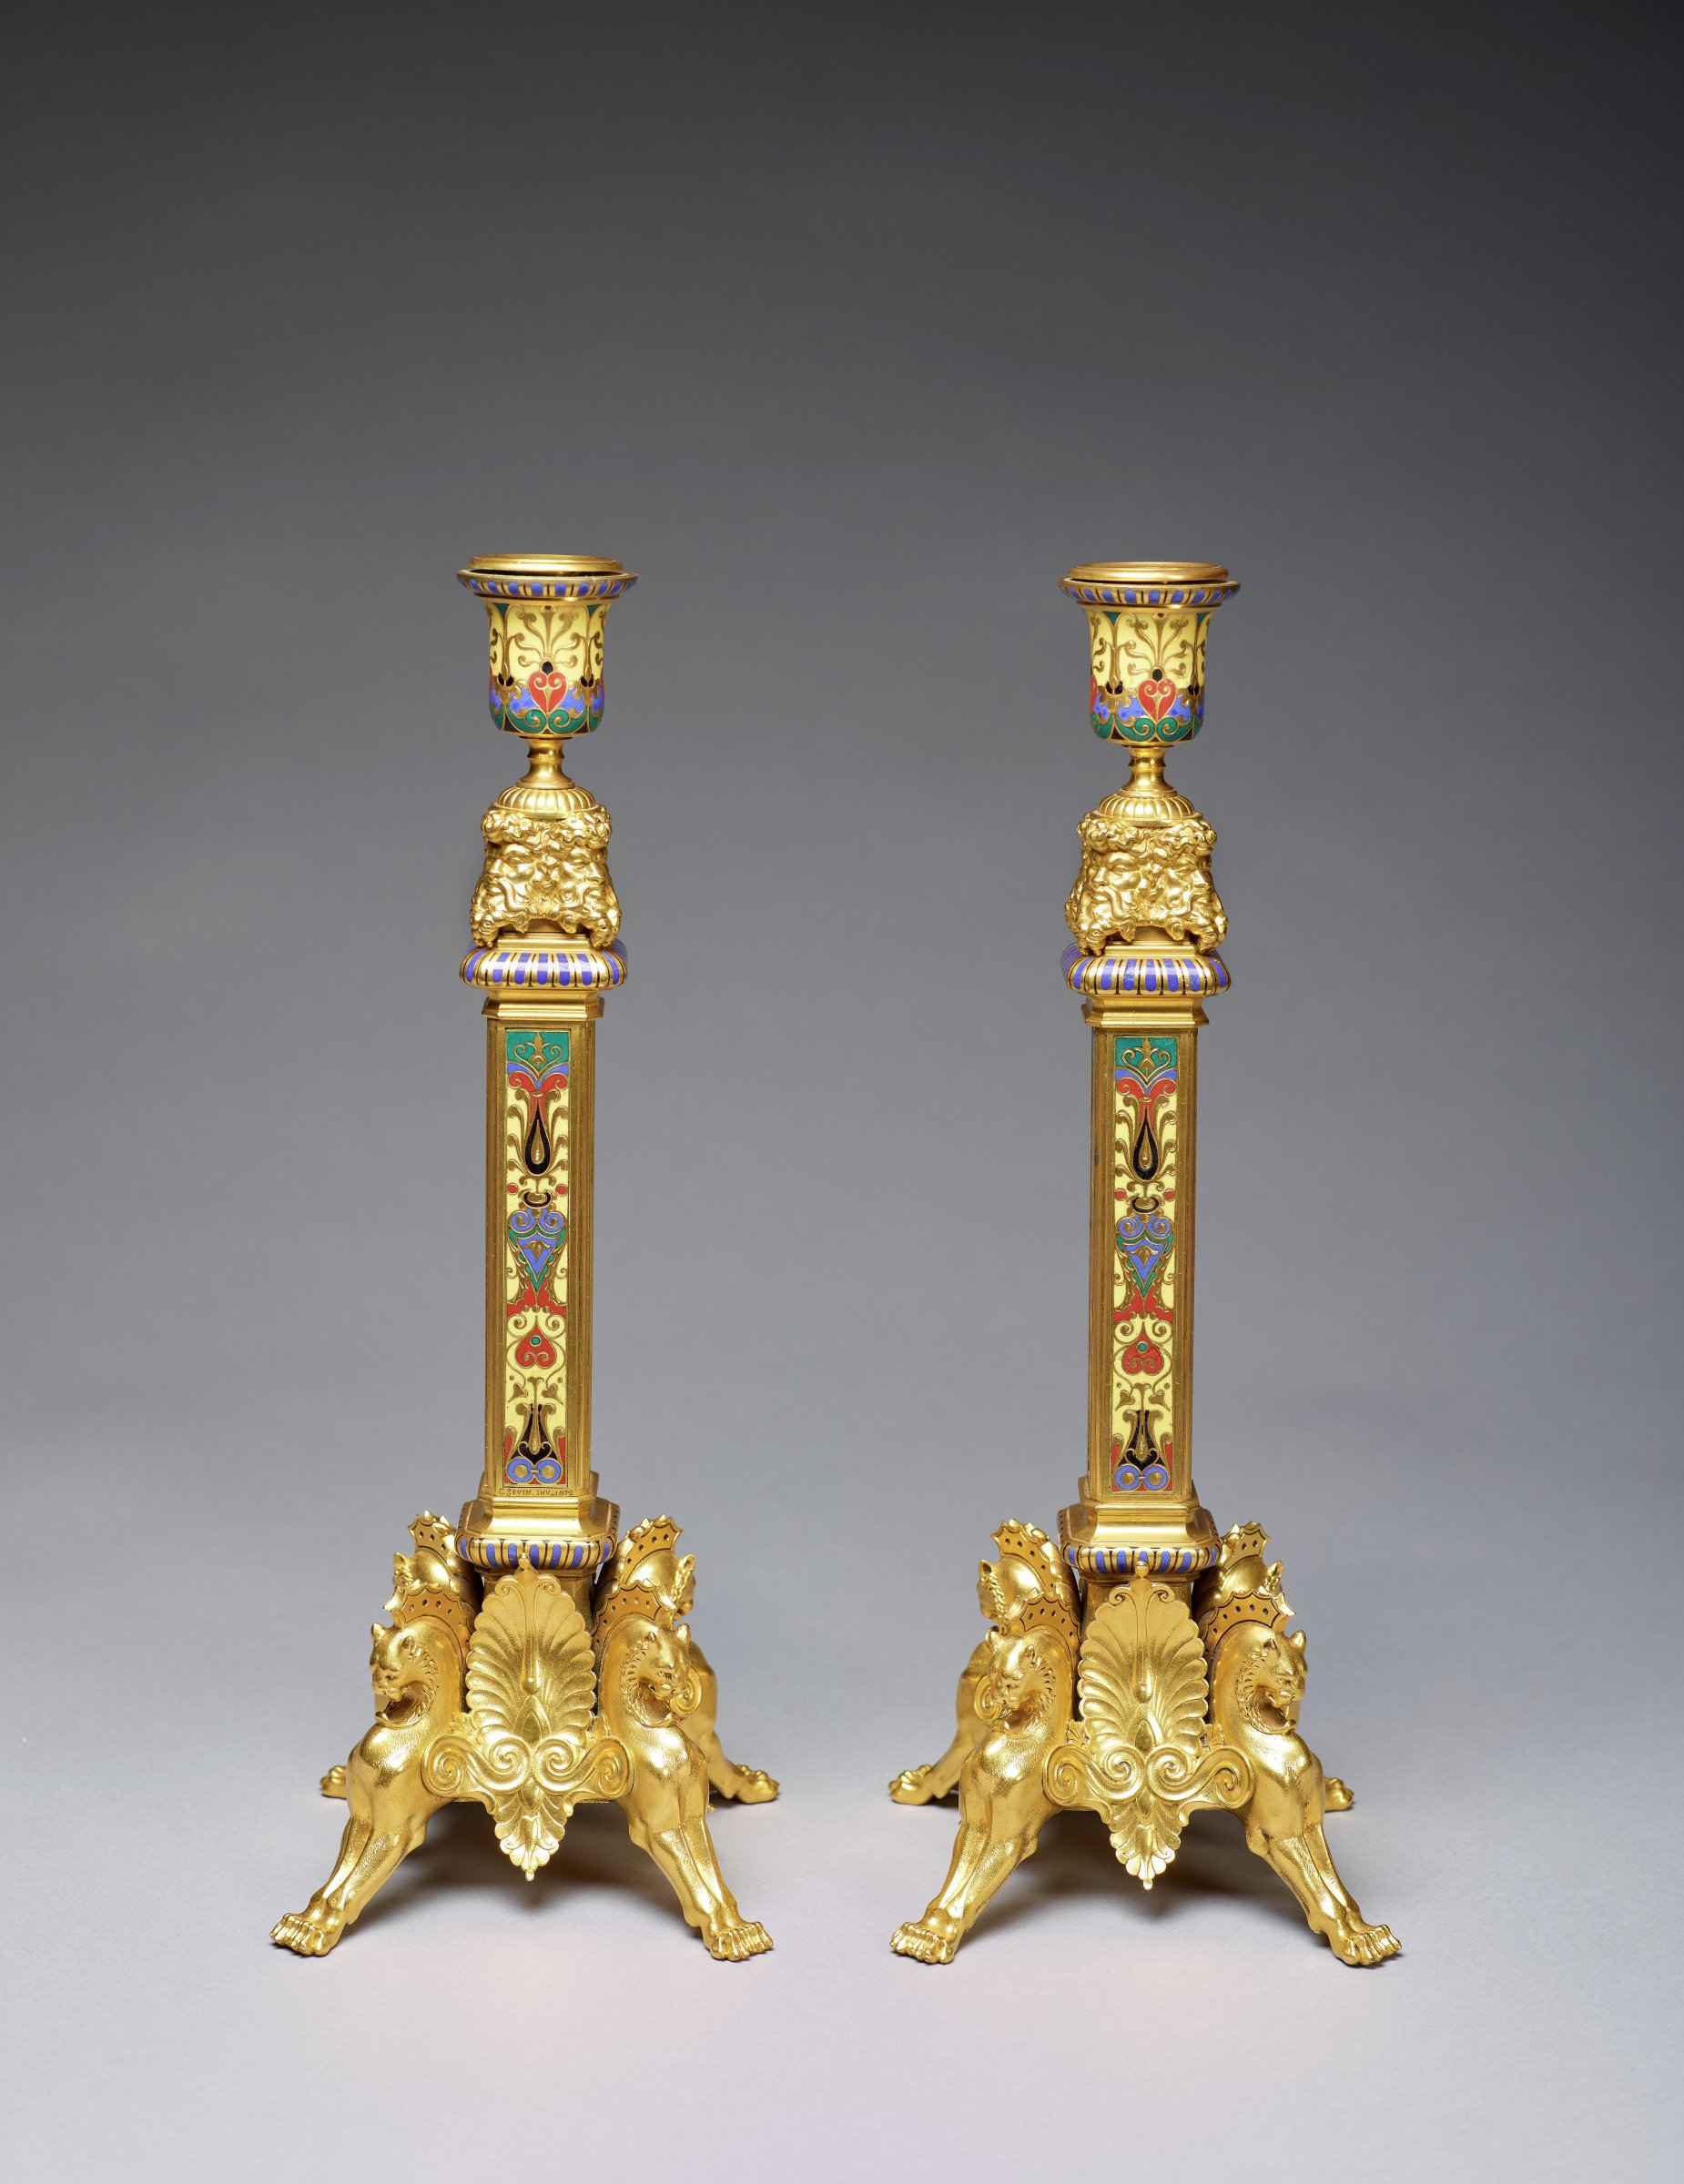 Pair of tall, gilt-bronze candlesticks in the Neo-Byzantine style, each resting on four regal-looking, stylized winged panthers, with square columnar stems decorated with brightly-colored enamel in the cloisonné technique in a pattern of scrolls and leaf motifs, the top and base of the stem with gadrooning highlighted in blue enamel, with four bearded masks at the top of the stem supporting an urn shaped candle nozzle that is likewise decorated with bright enamel in the cloisonné technique and with a band of gadrooning highlighted in blue at the upper edge.